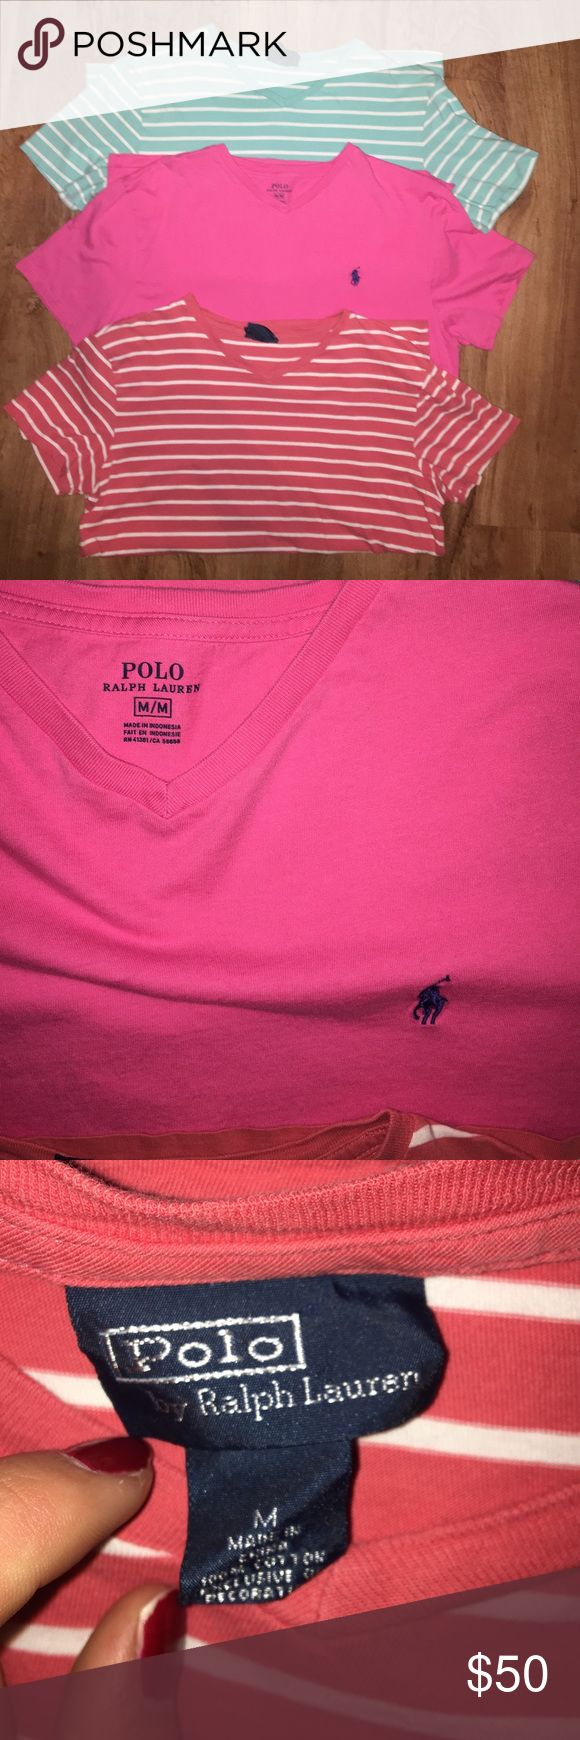 Men's Polo T Shirts Pink one is brand new without tags. All are V-necks and in perfect condition! Polo by Ralph Lauren Shirts Tees - Short Sleeve